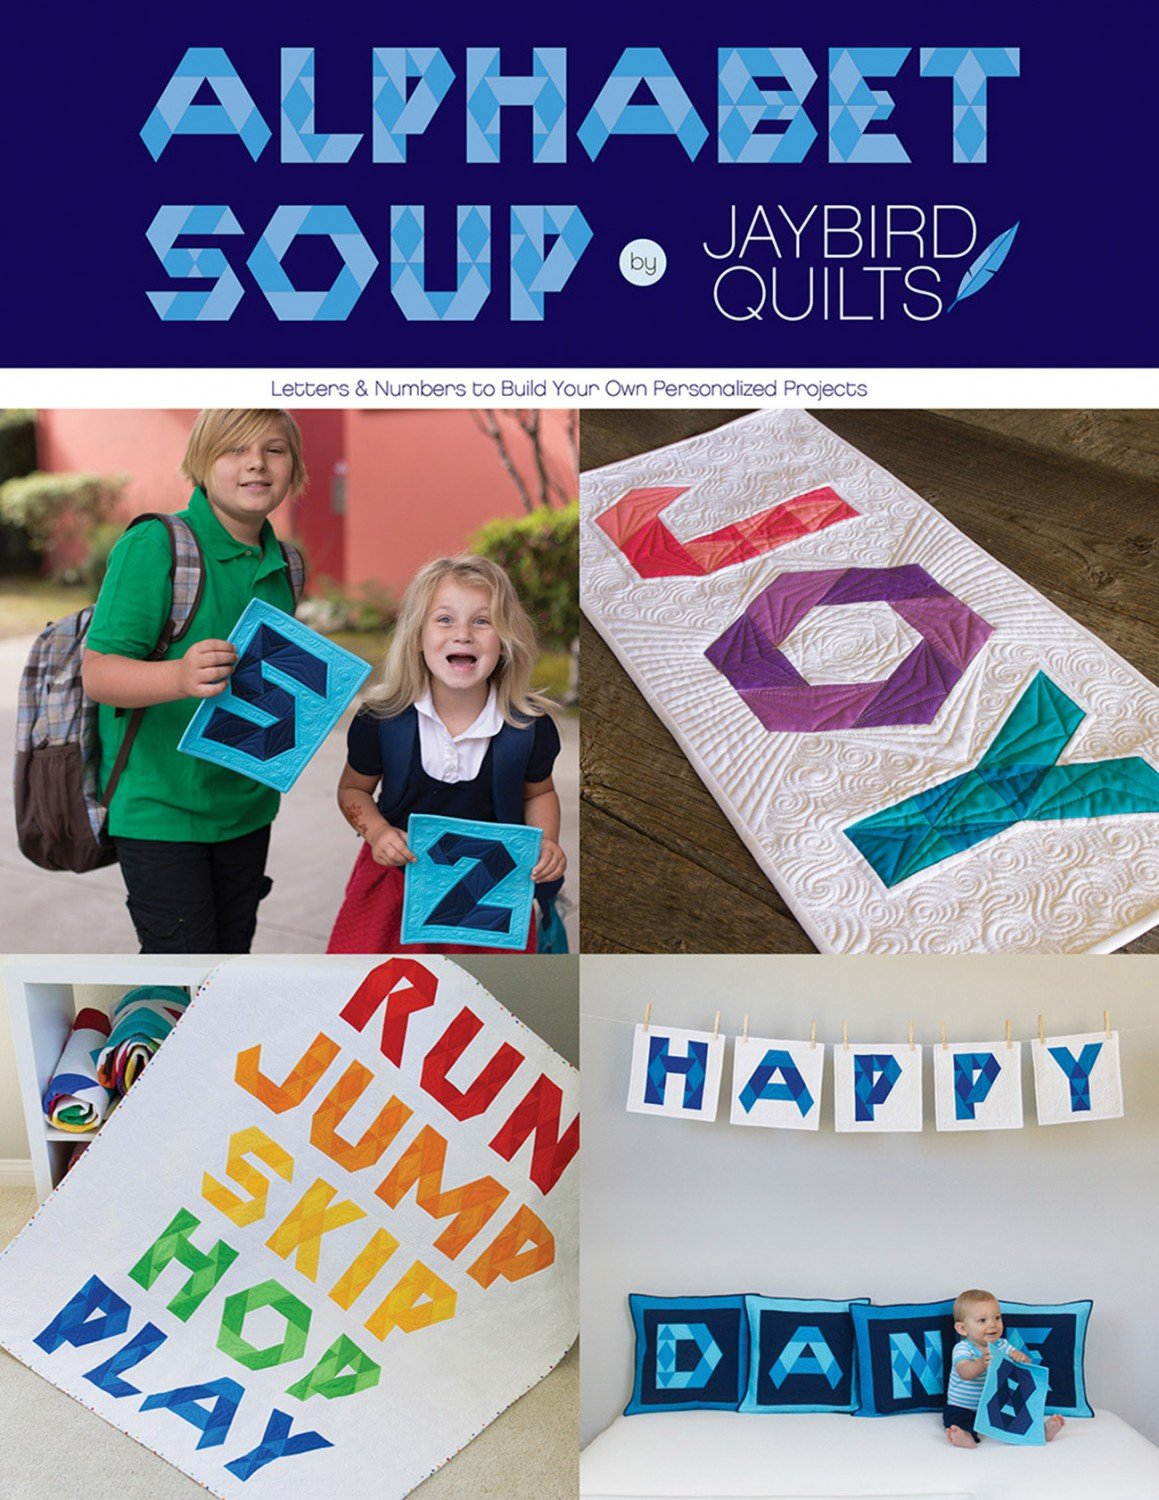 Alphabet Soup by Jaybird Quilts